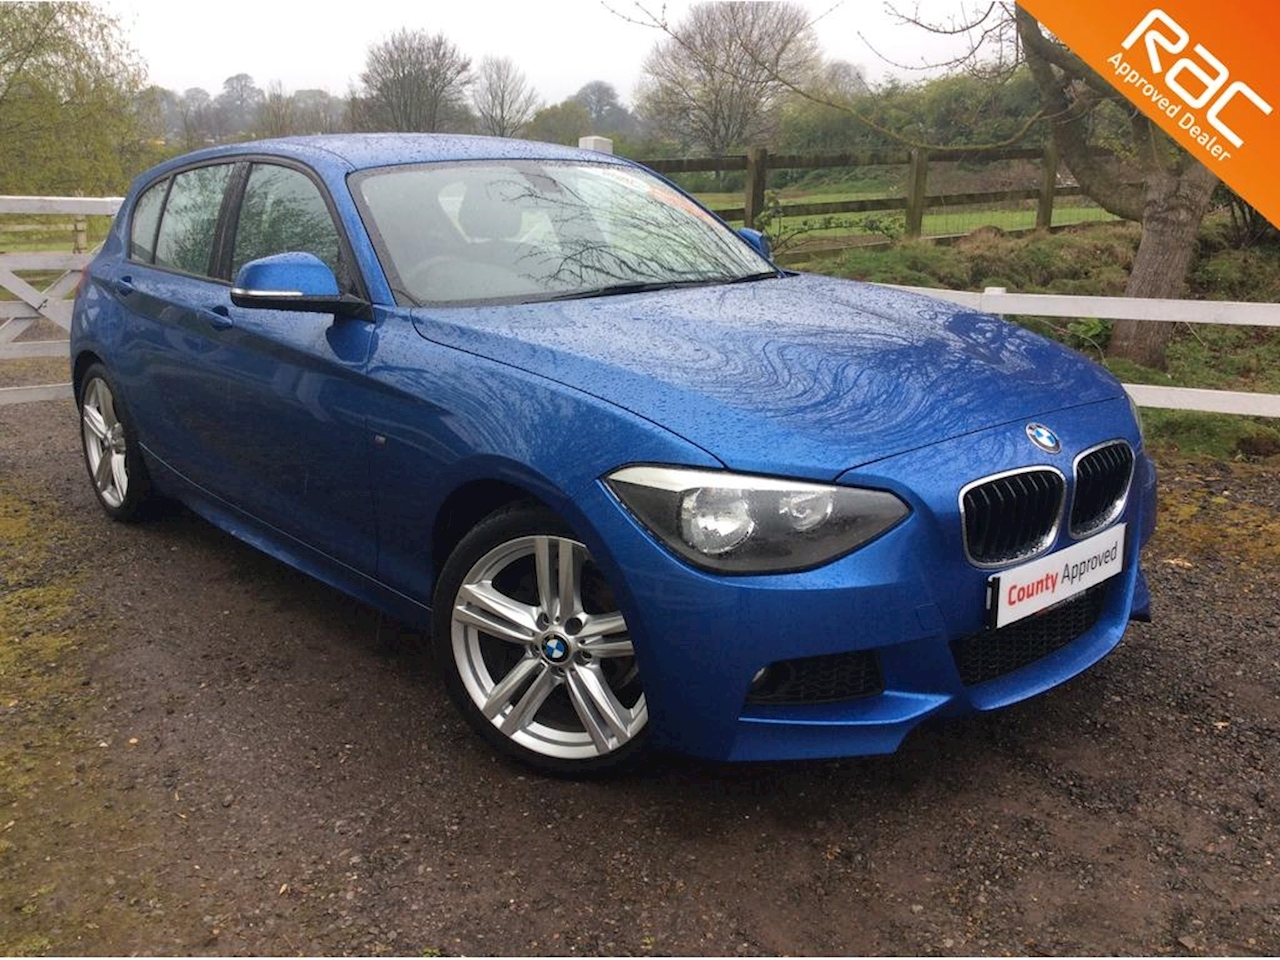 BMW 1 Series 116D M Sport Hatchback 2.0 Manual Diesel